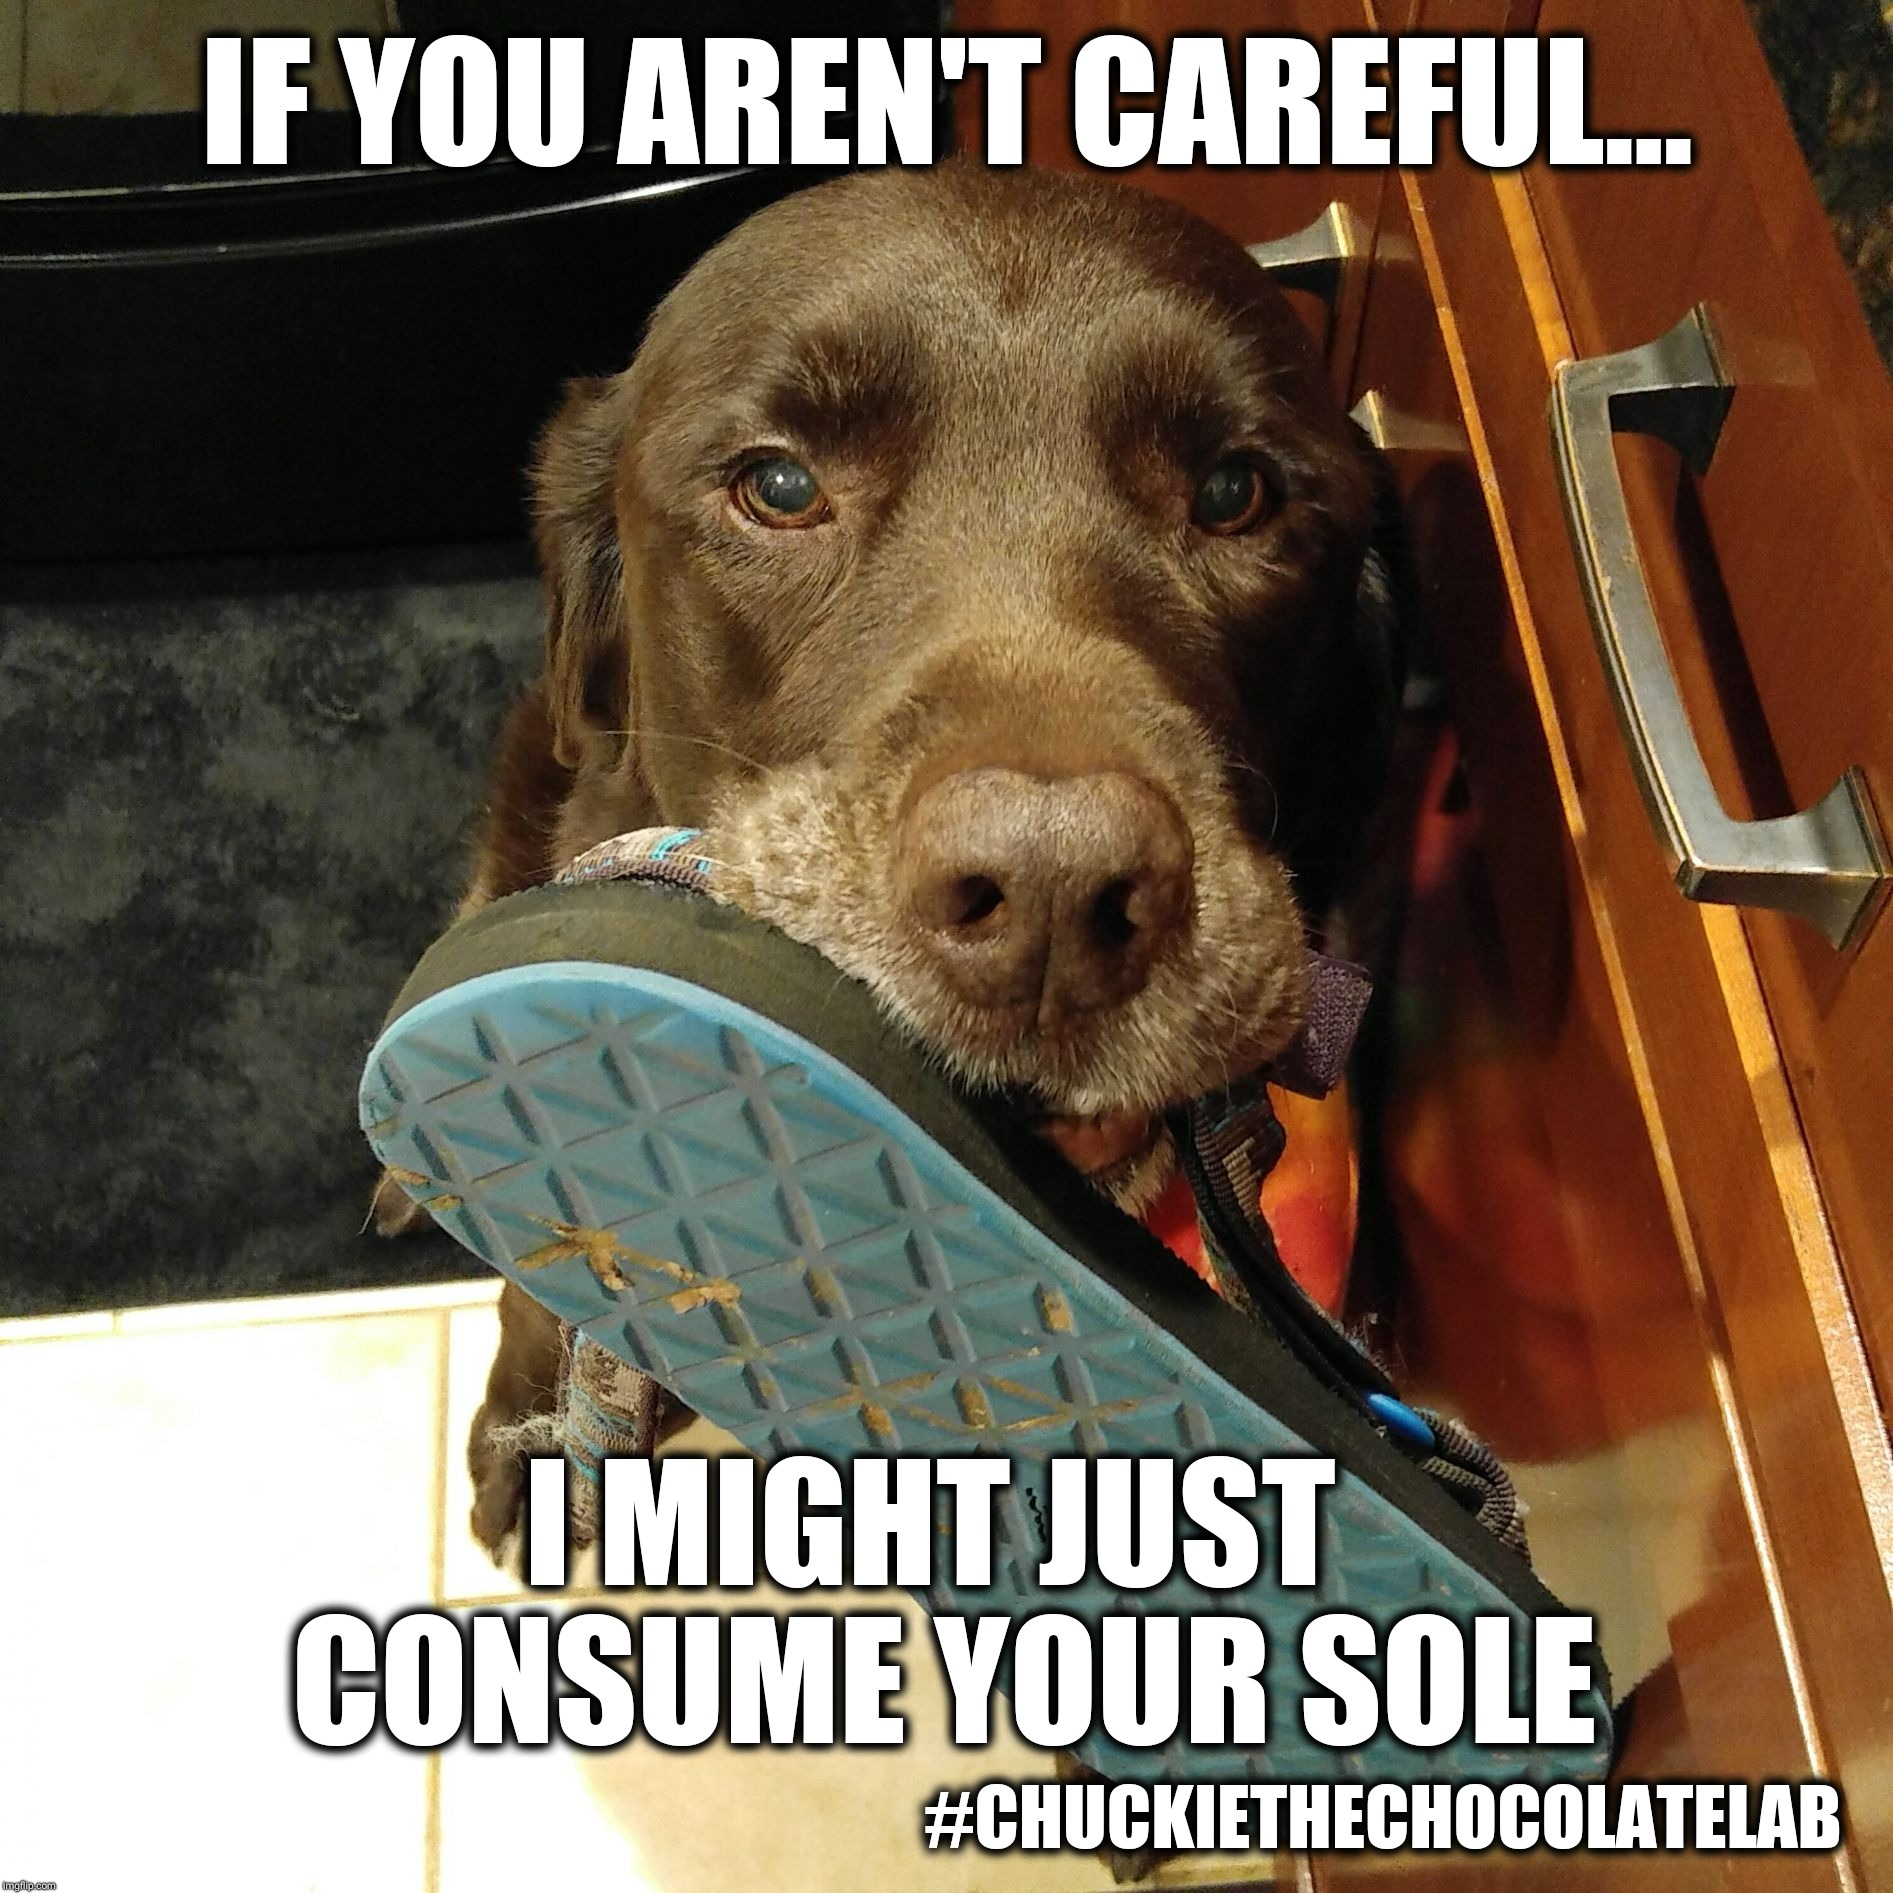 If you aren't careful I might just consume your sole | IF YOU AREN'T CAREFUL... I MIGHT JUST CONSUME YOUR SOLE #CHUCKIETHECHOCOLATELAB | image tagged in chuckie the chocolate lab teamchuckie,funny,dogs,memes,puns,sandals | made w/ Imgflip meme maker